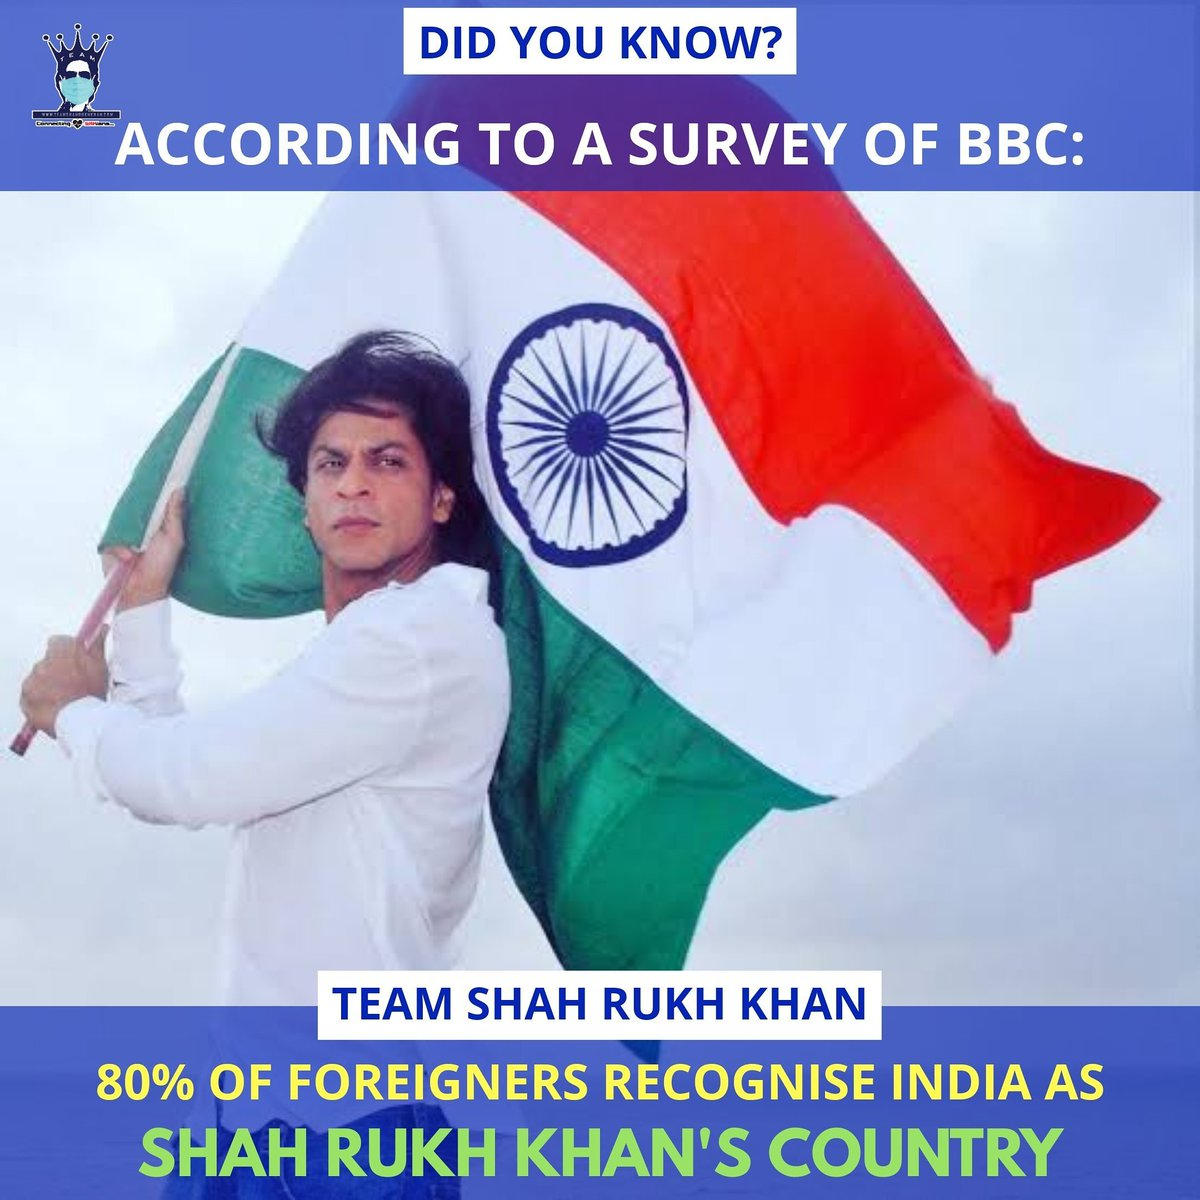 Did you know?  According to a survey conducted by BBC few years ago, it's reported that 80% foreigners recognise India as Shah Rukh Khan's country 😍  @iamsrk @RedChilliesEnt  Representing India 🇮🇳 Global 😍  #GlobalSuperstarSRK #ShahRukhKhan #TeamShahRukhKhan https://t.co/k08OjjLBD0